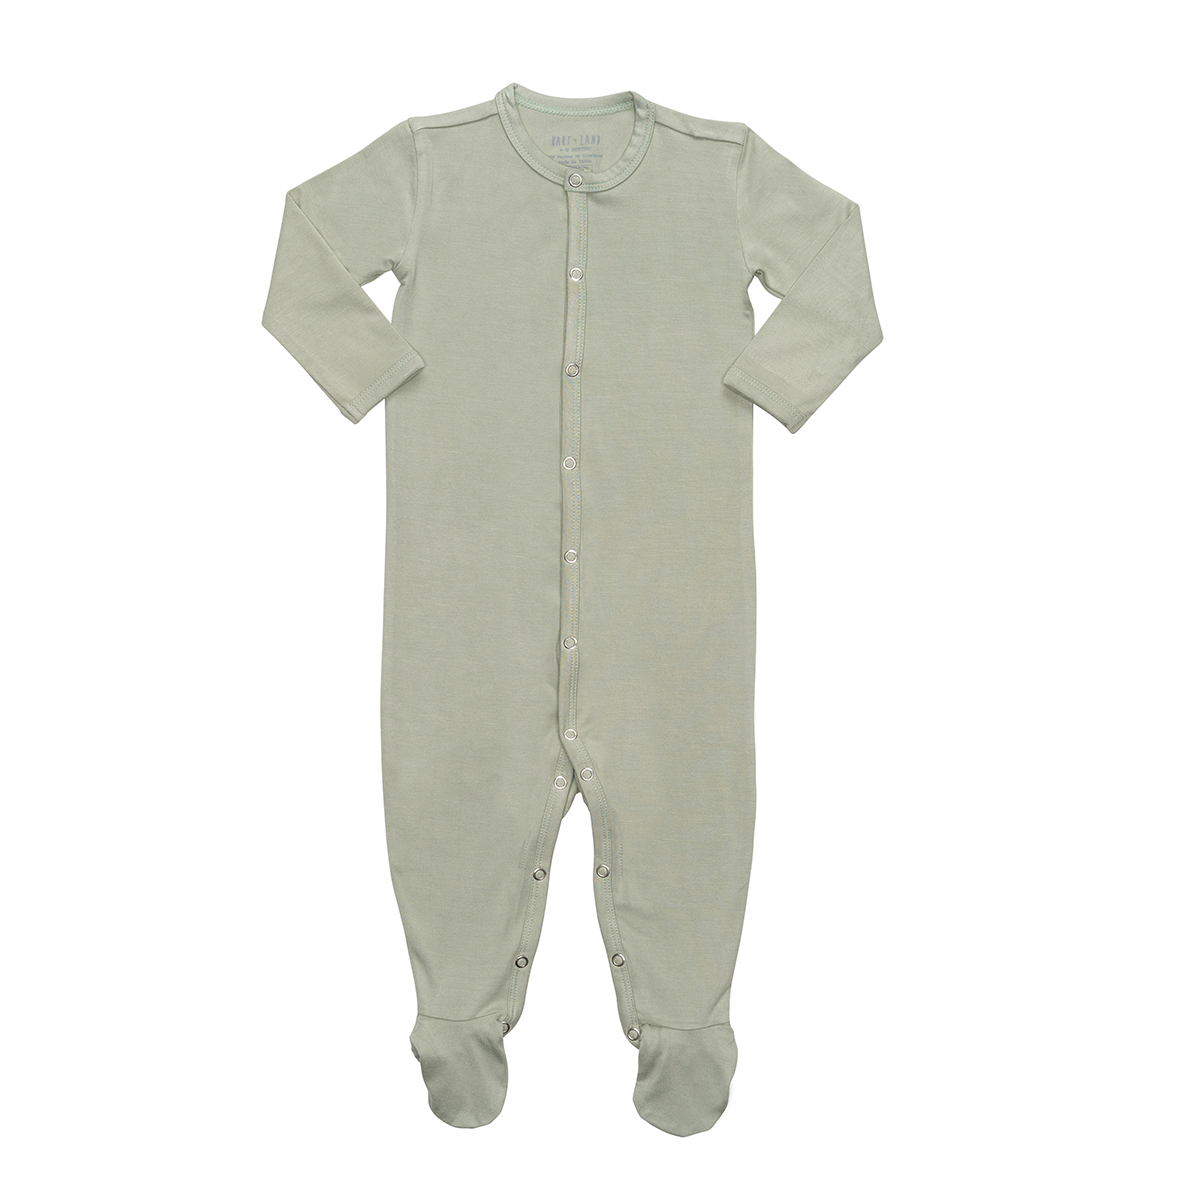 HART + LAND Bamboo footed bodysuit